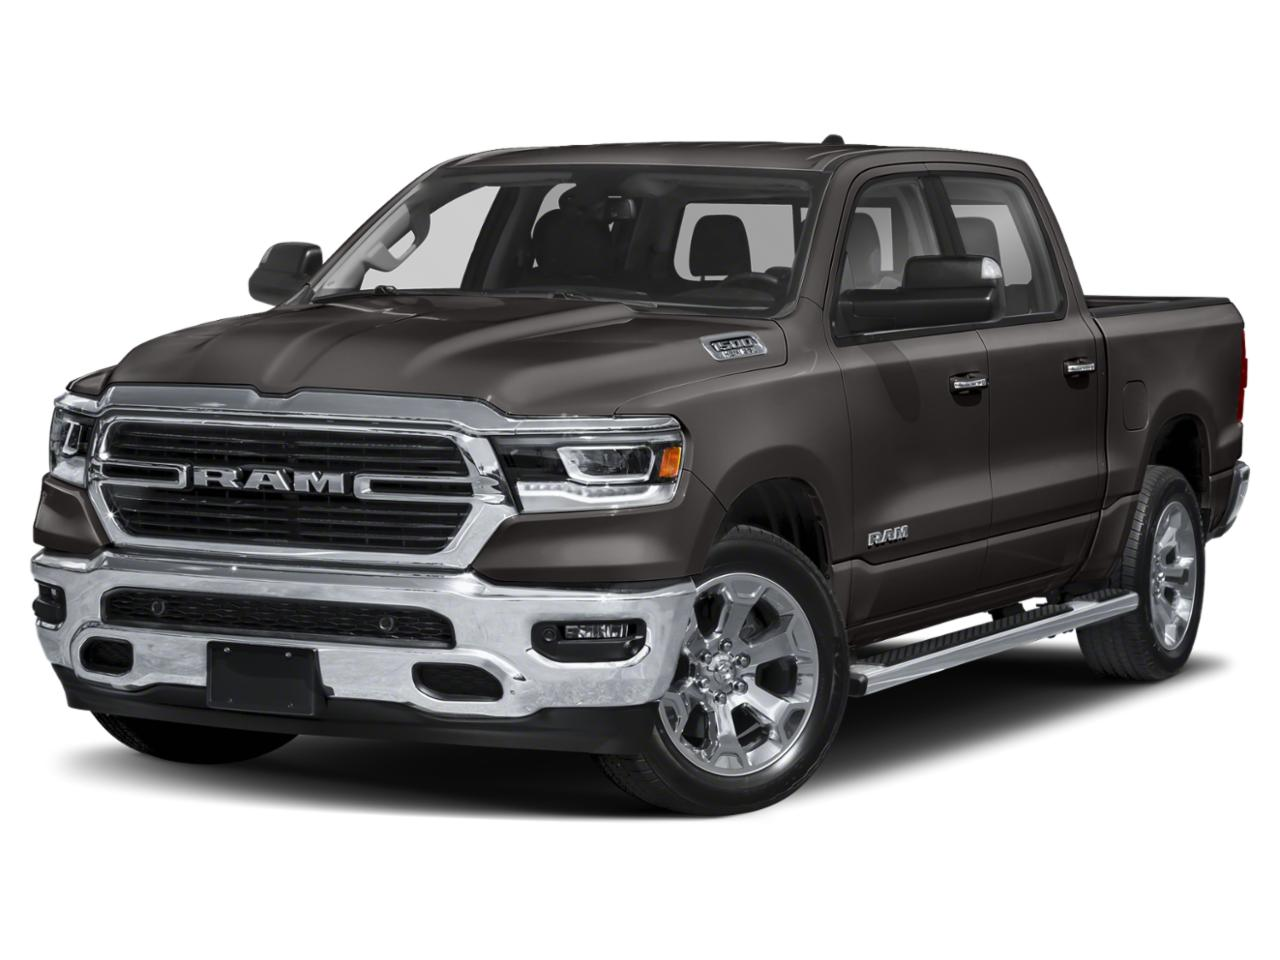 2019 Ram 1500 Vehicle Photo in TEMPLE, TX 76504-3447